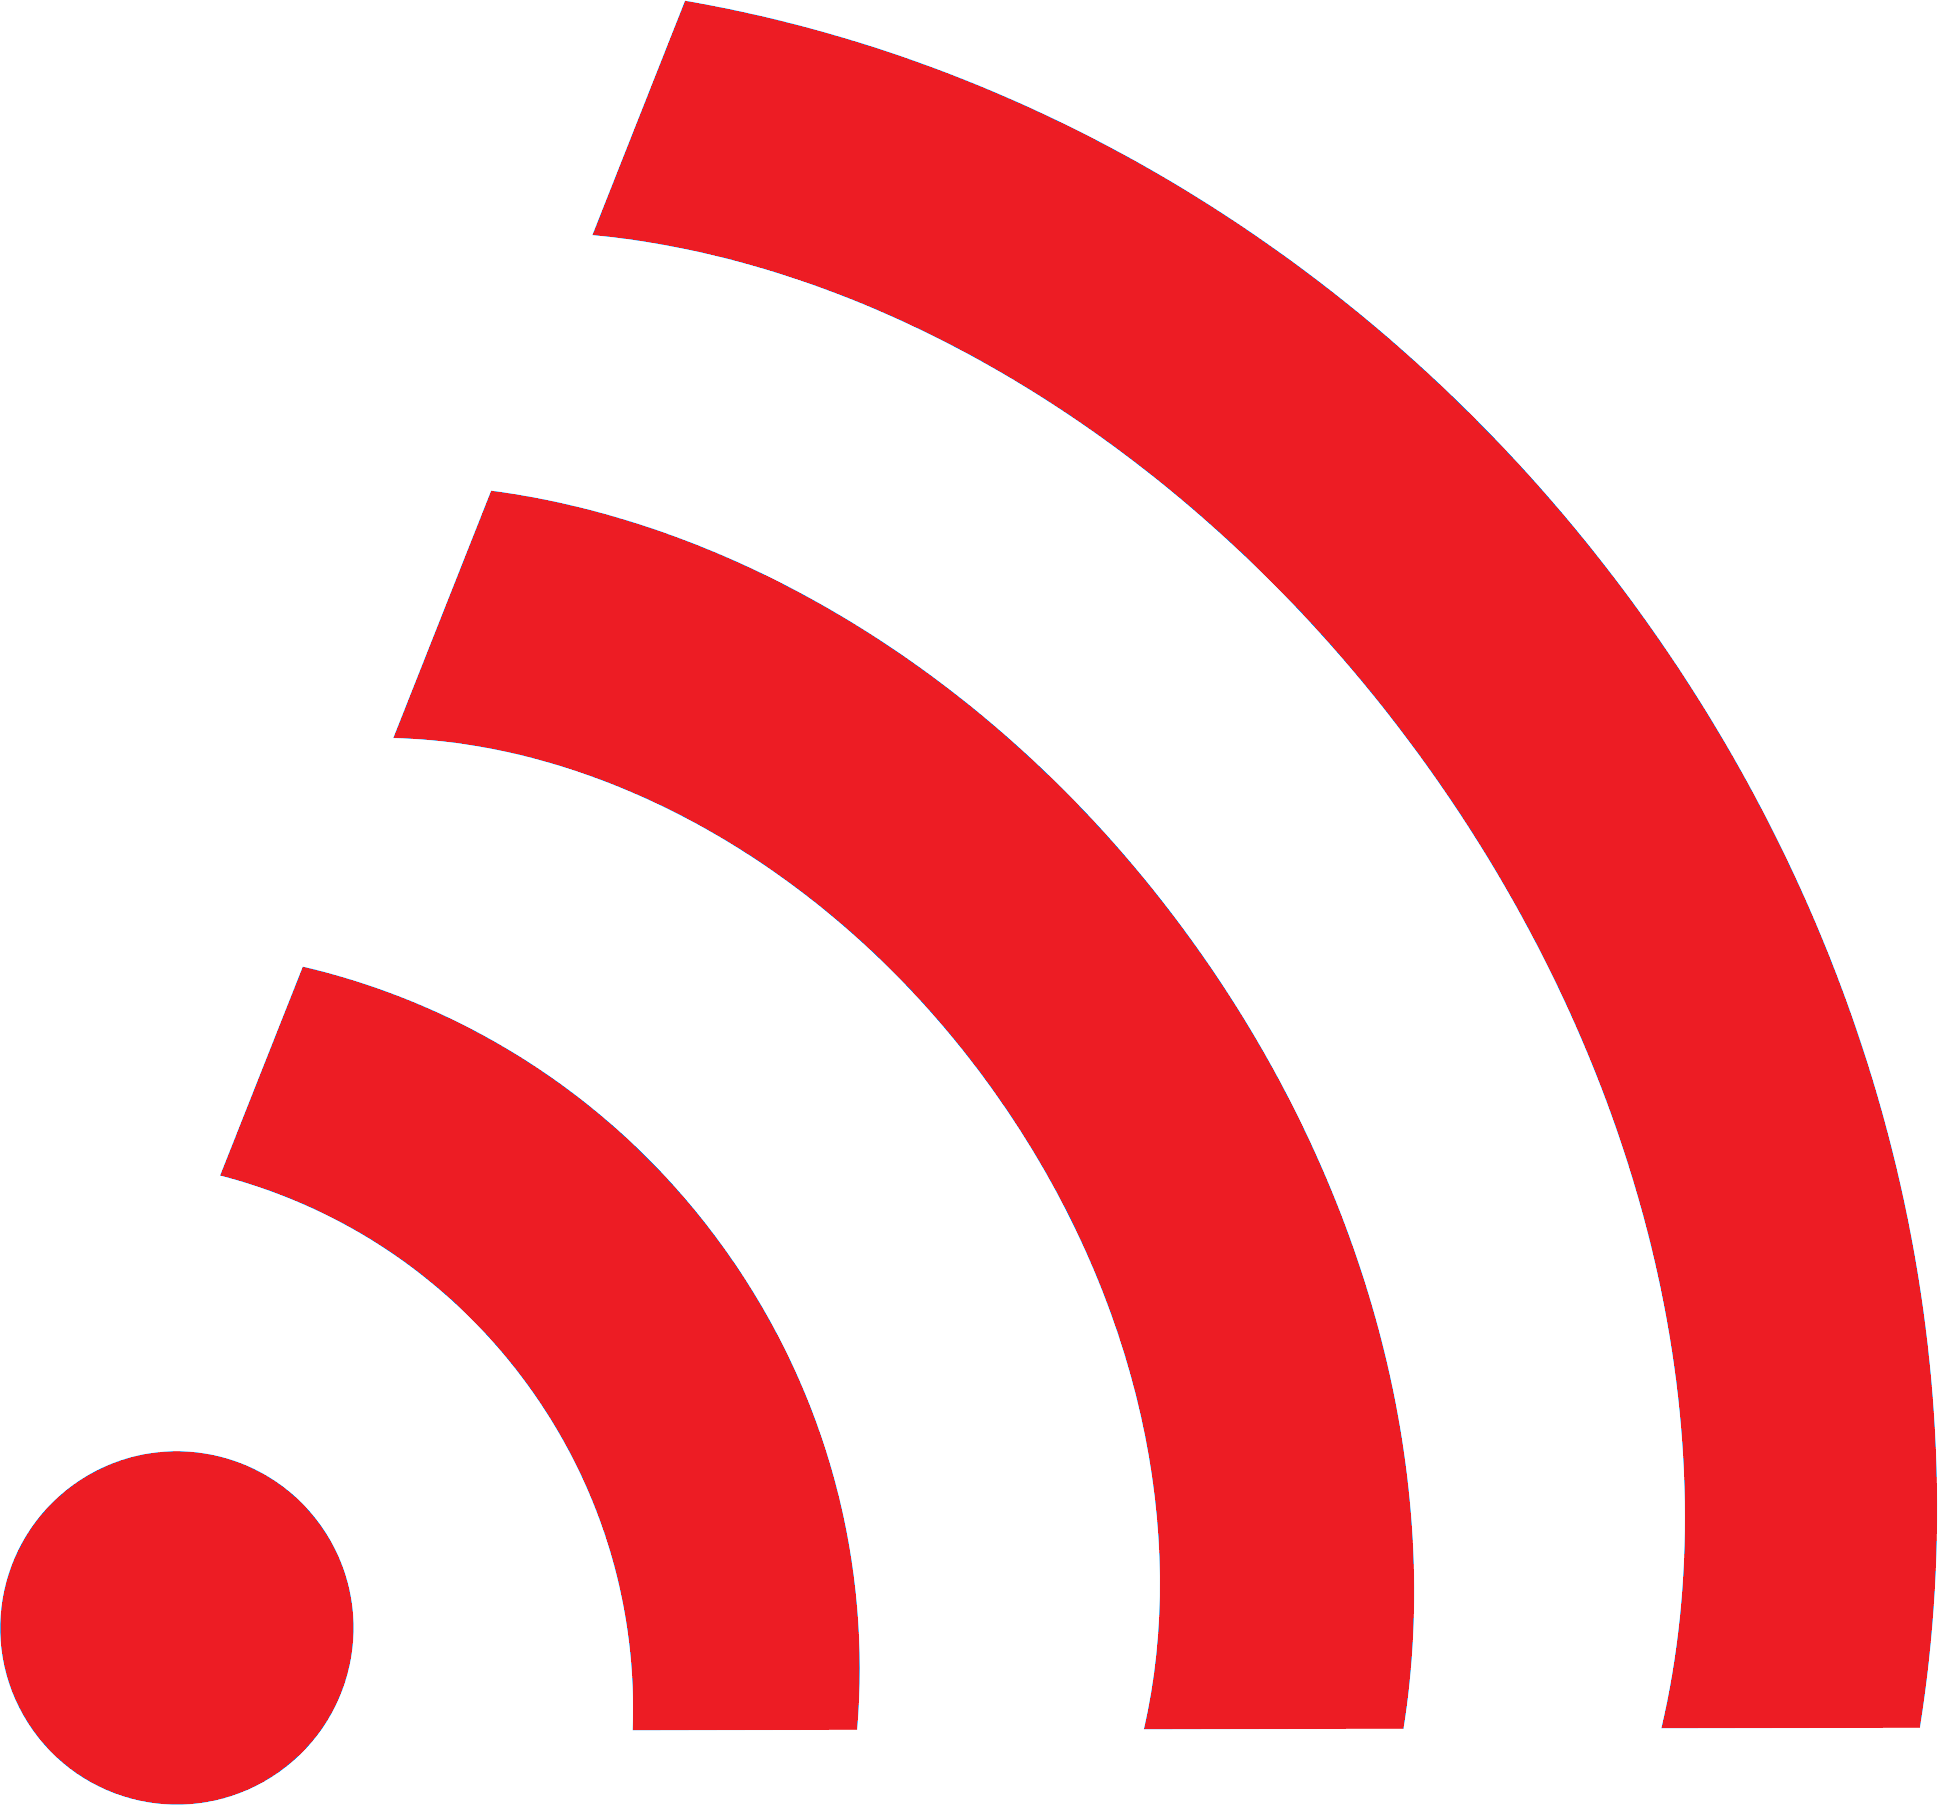 Wifi Icon Red PNG Image Wifi icon, Icon, Png photo